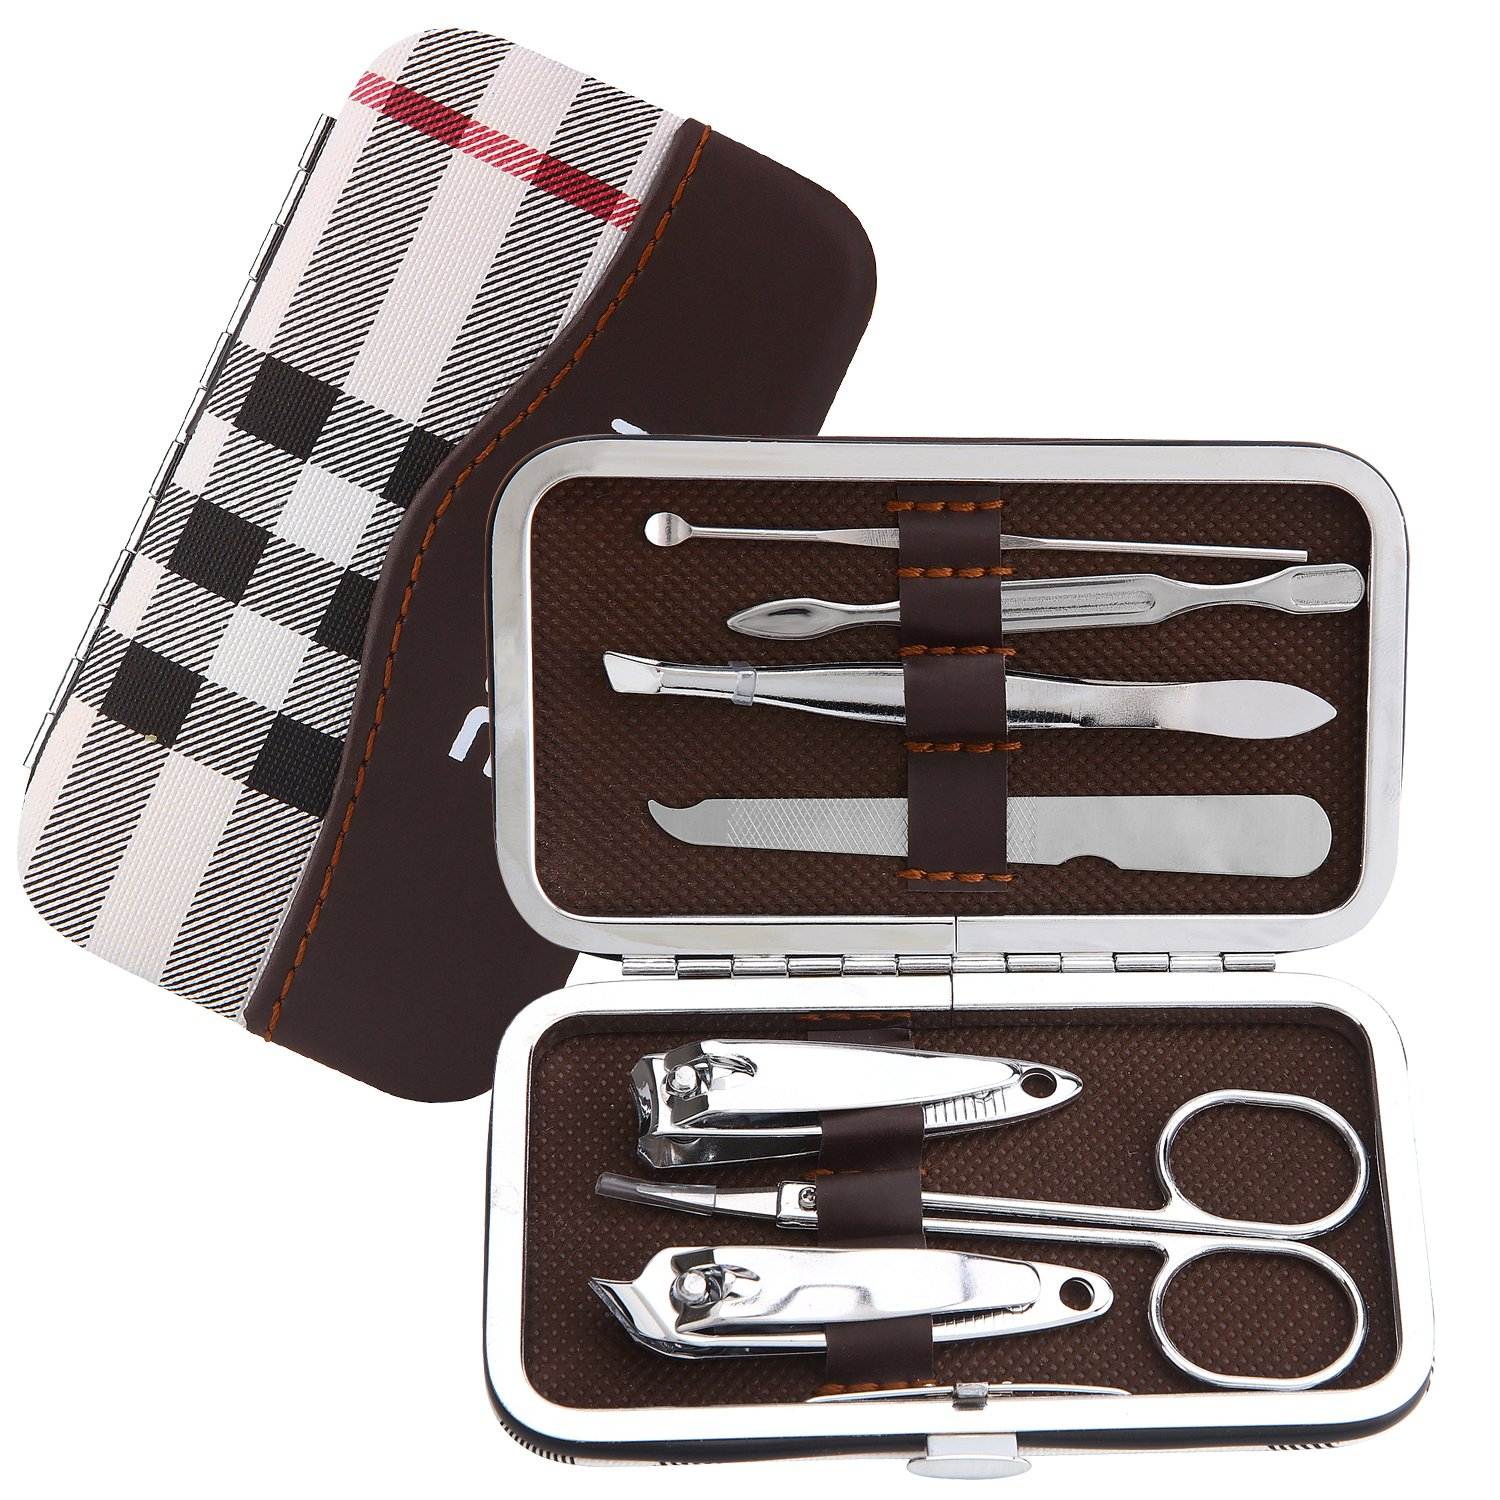 Romiky Stainless Steel Nail Clipper Set Professional Nail Cutter Grooming Kit 7 in 1 Manicure Beauty Tool Pack Pedicure Kit with Leather Case (Mixed color)